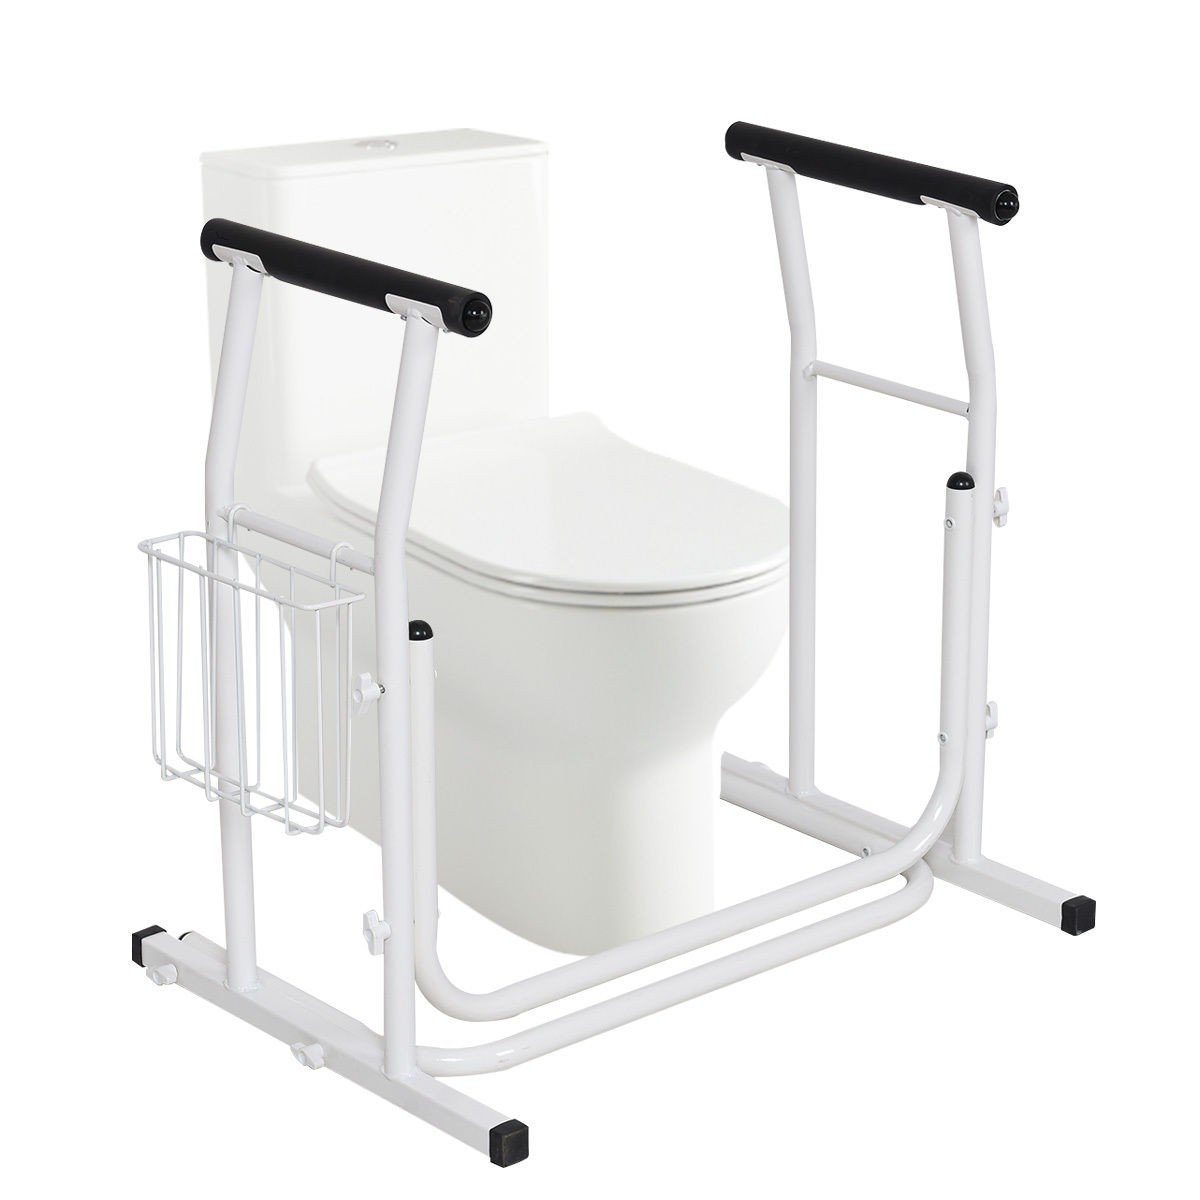 Medical Bathroom Toilet Rail Grab Bar and Commode Safety Frame Handle for Elderly, Senior, Handicap & Disabled - Padded Handrails